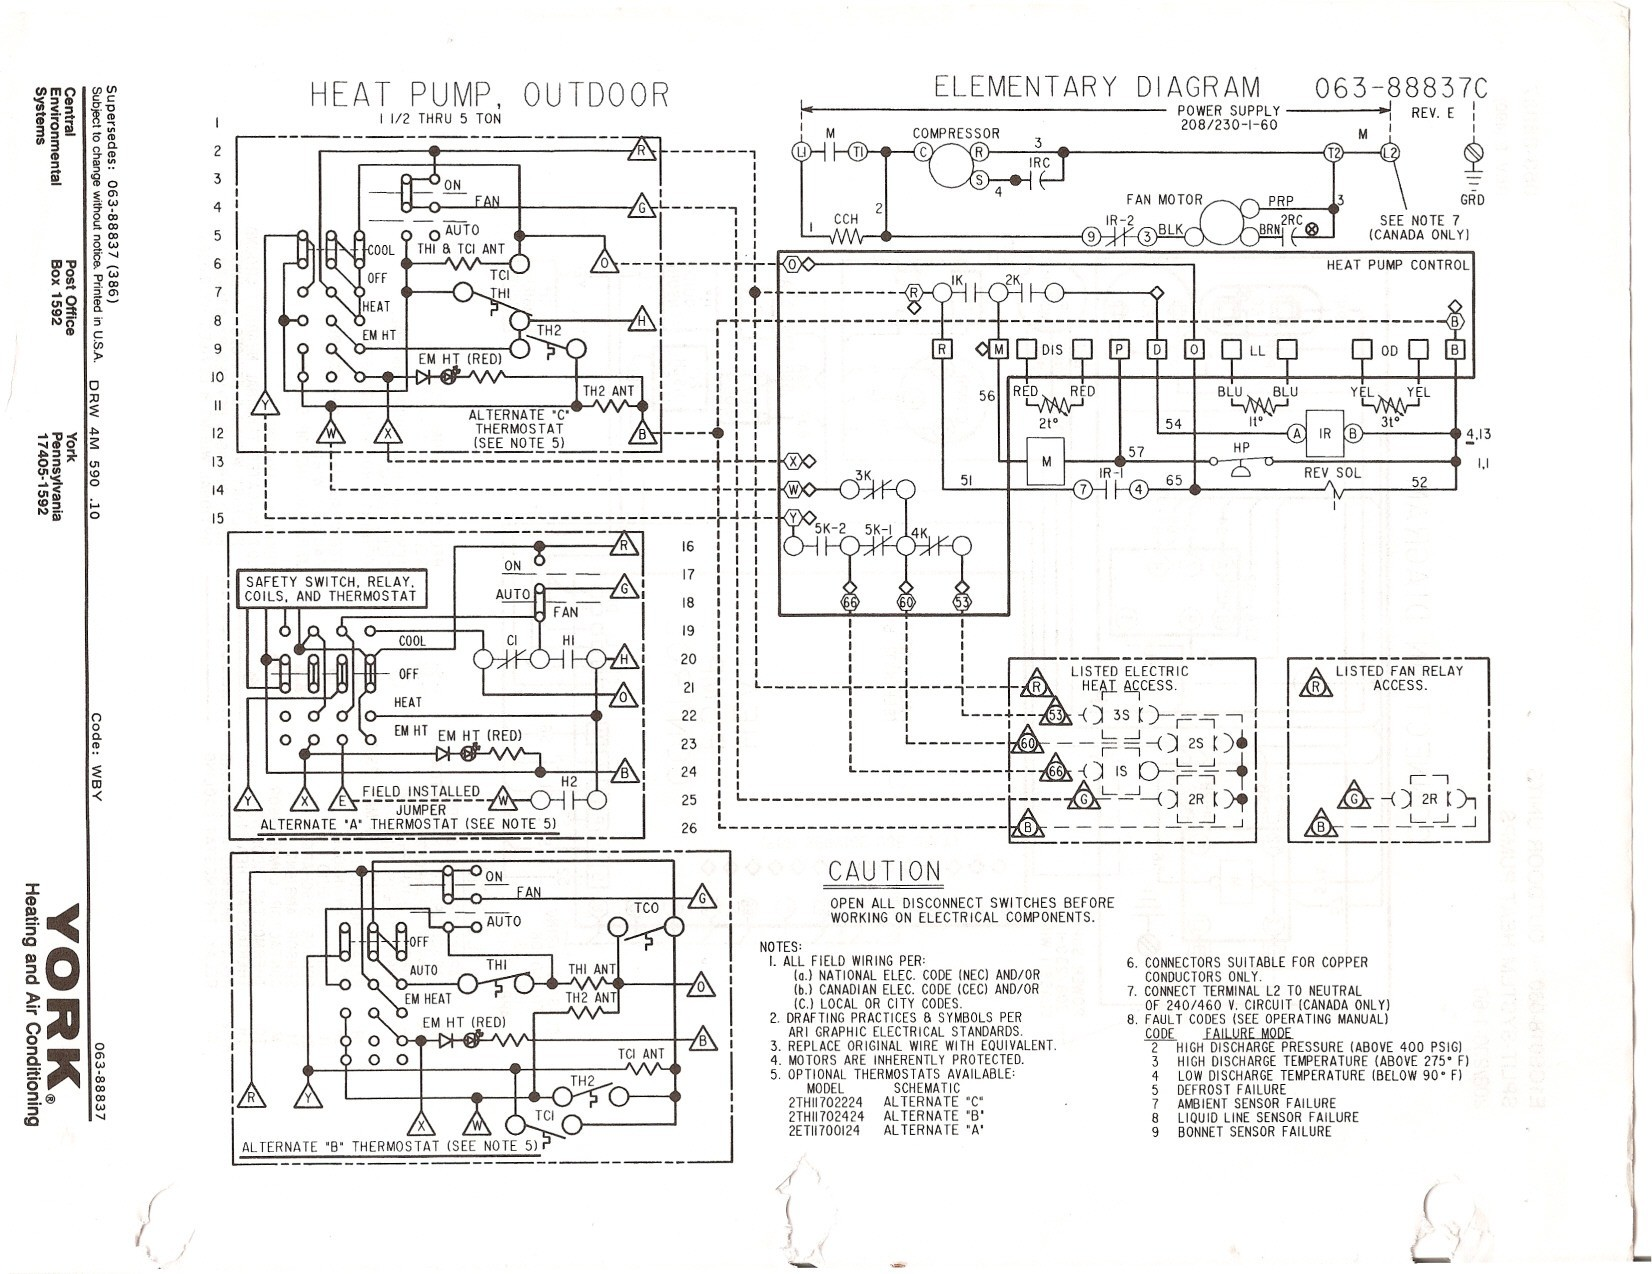 Goodman Heat Pump Wiring Diagram Goodman Heat Pump thermostat Wiring Diagram New Carrier Heat Pump Of Goodman Heat Pump Wiring Diagram Goodman Air Handler Wiring Diagram New Electric Heat Wiring Diagram